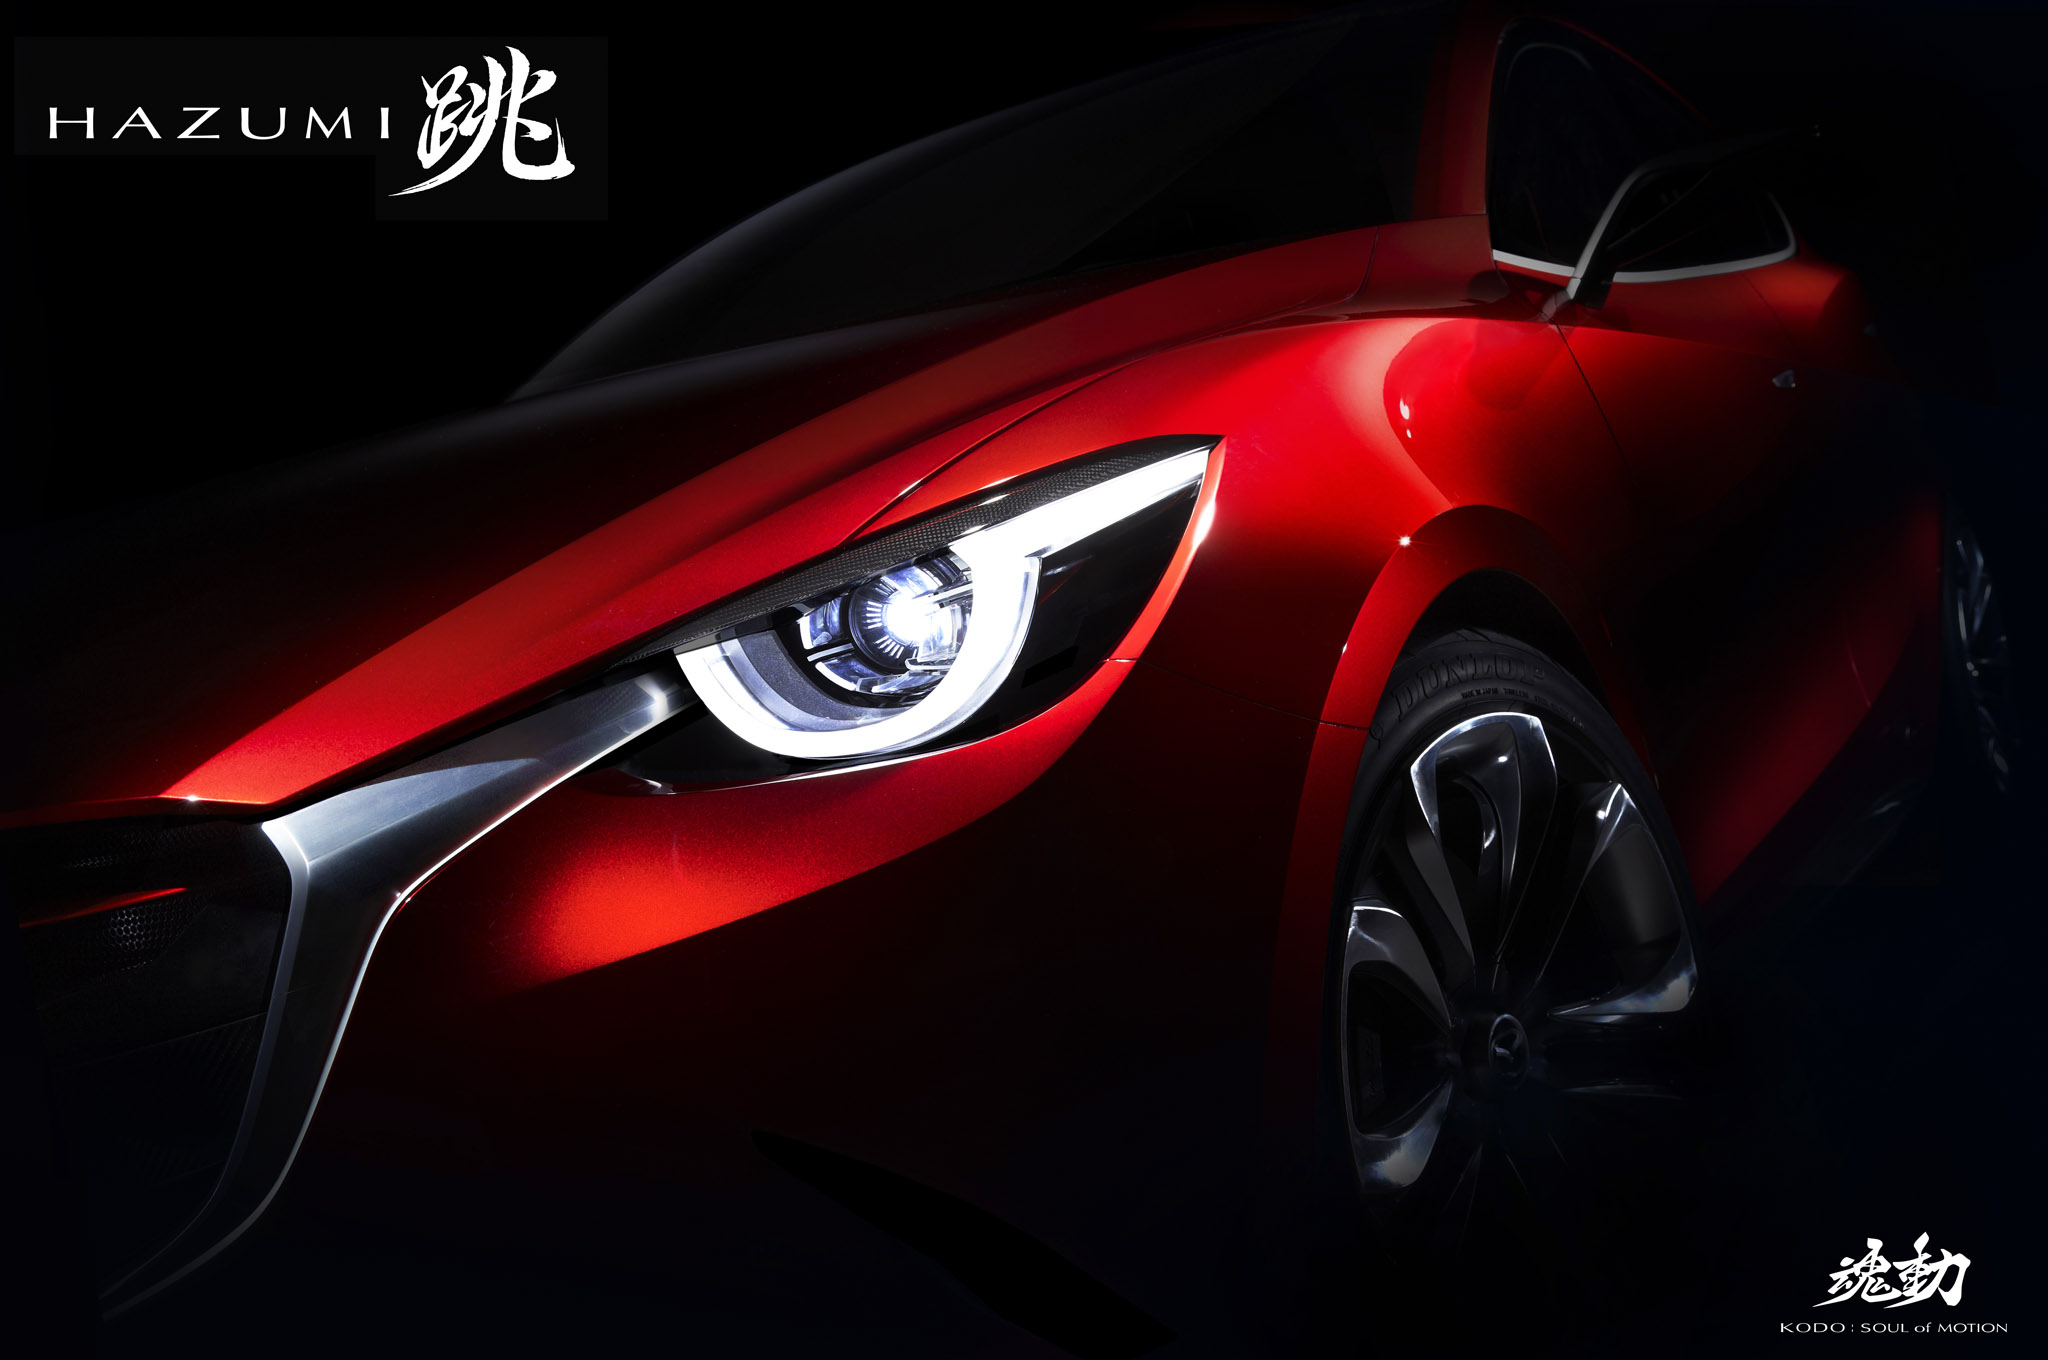 Mazda Hazumi Concept Teased, Previews Next-Gen Mazda2